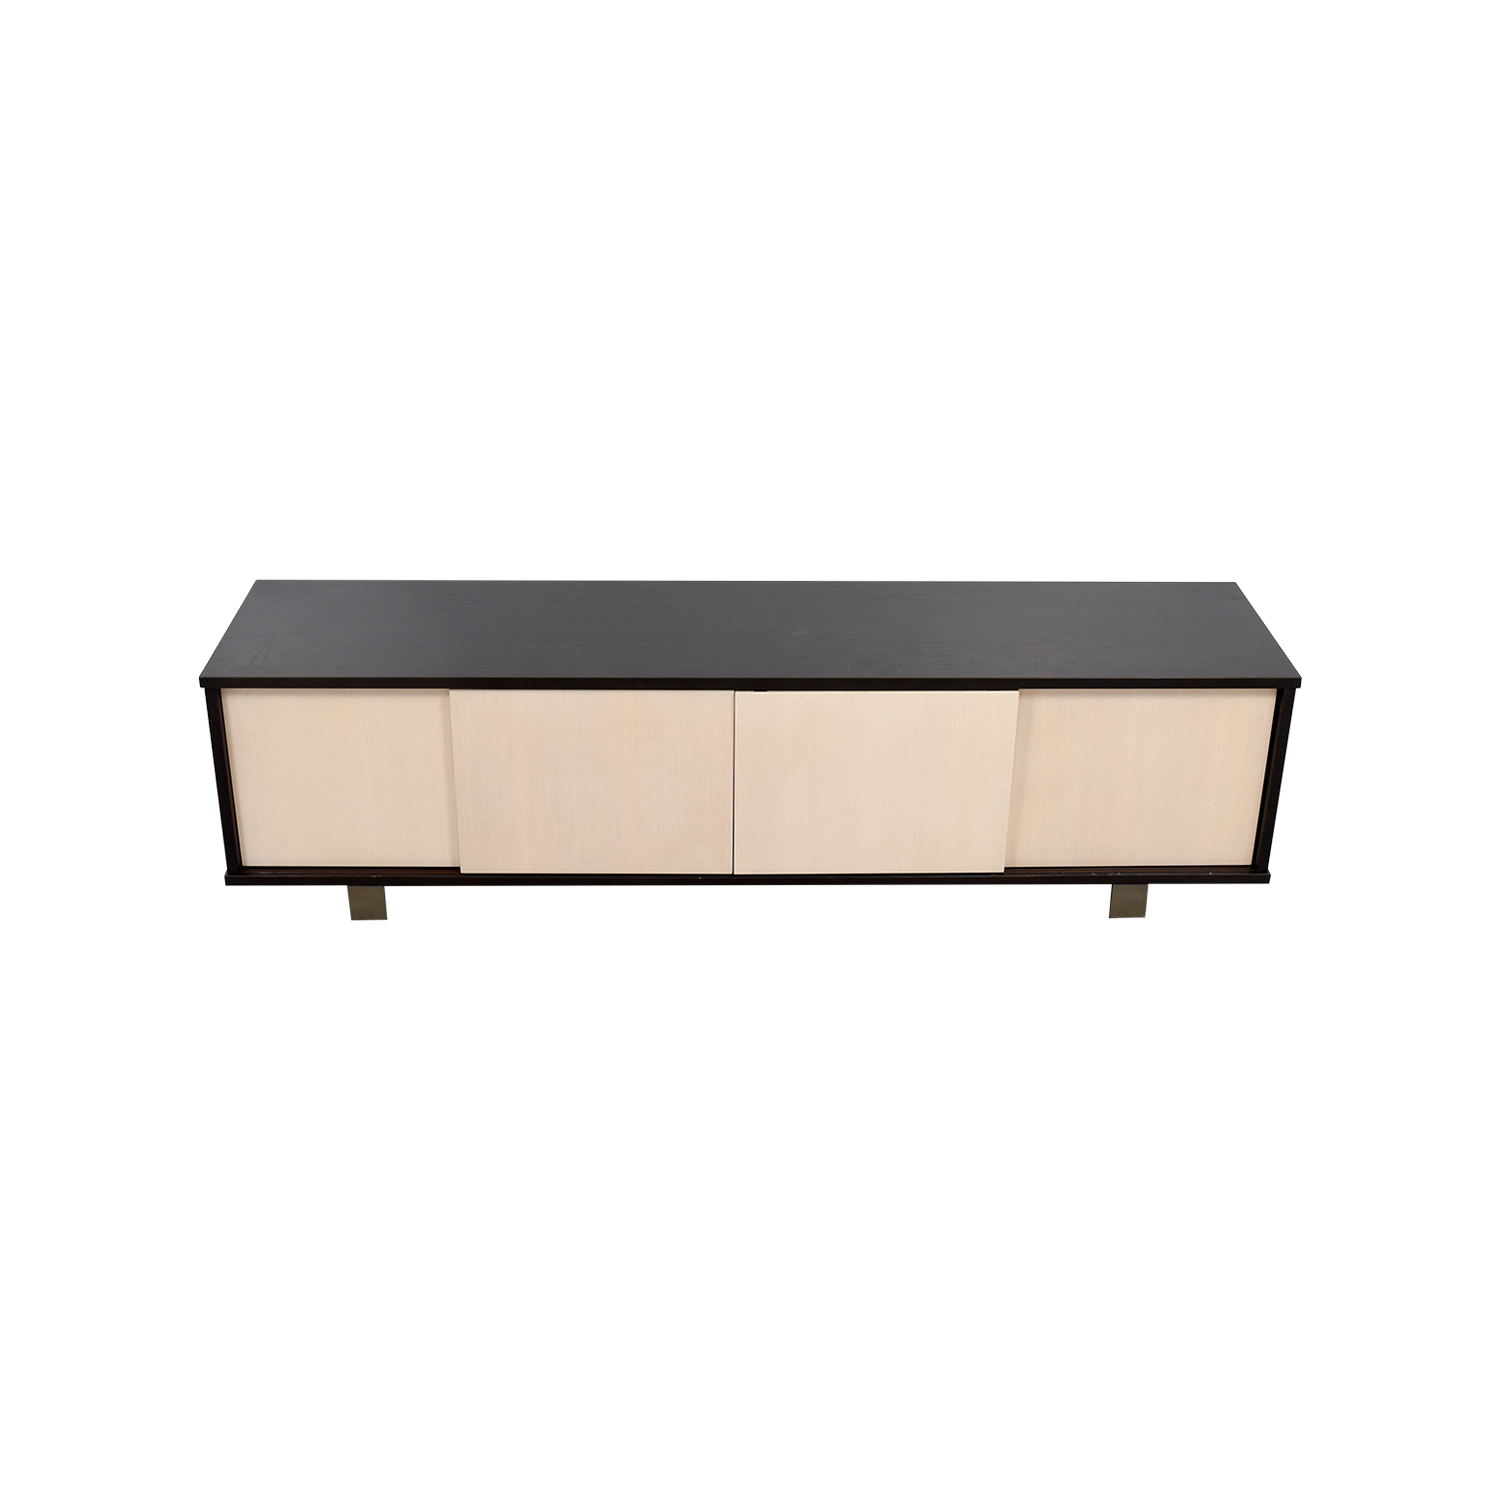 Custom Made Two-Toned Media Credenza used